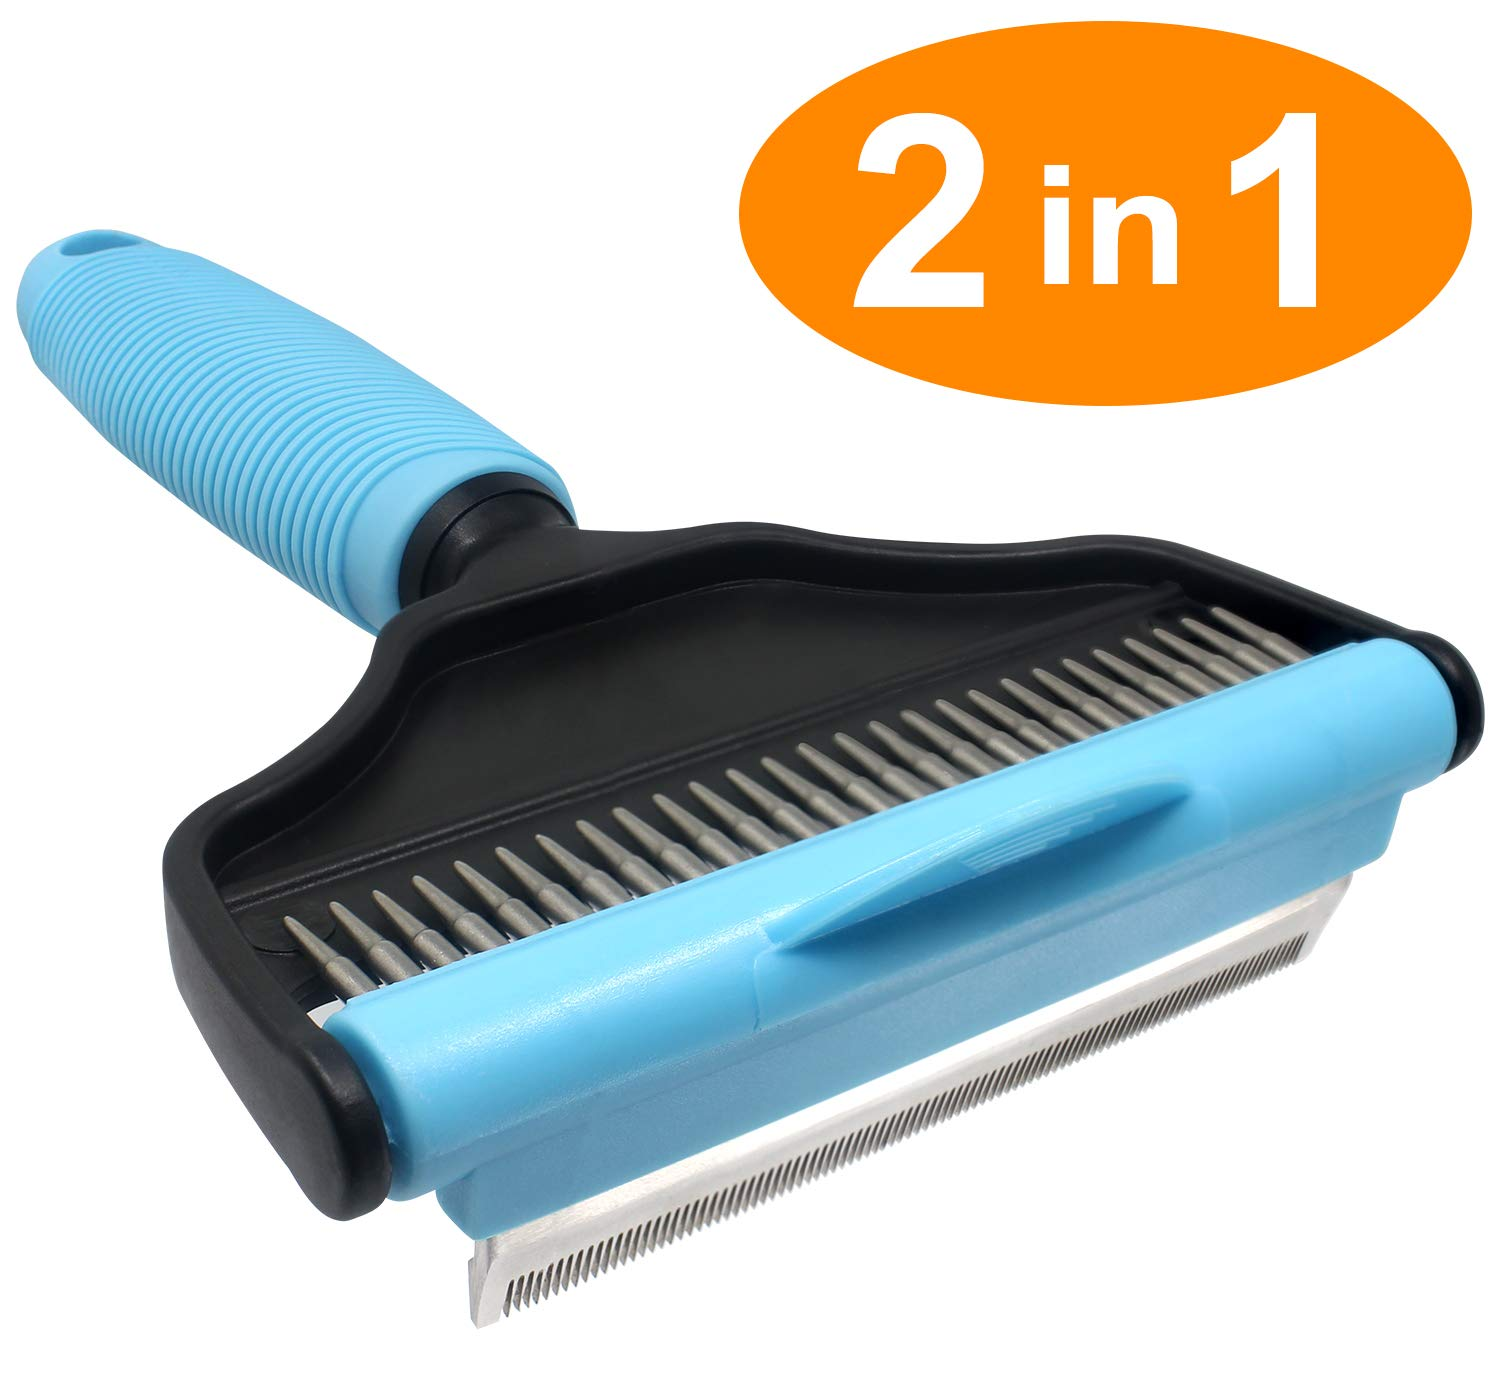 Dog Shedding Brush, Cat Grooming Deshedding Dematting Tool 2 in 1(Brush Rake) Professional Remove Pet Fur Undercoat Comb, Effectively Reduces Shedding By Up To 95% for Long Short Hair Large Small Dogs